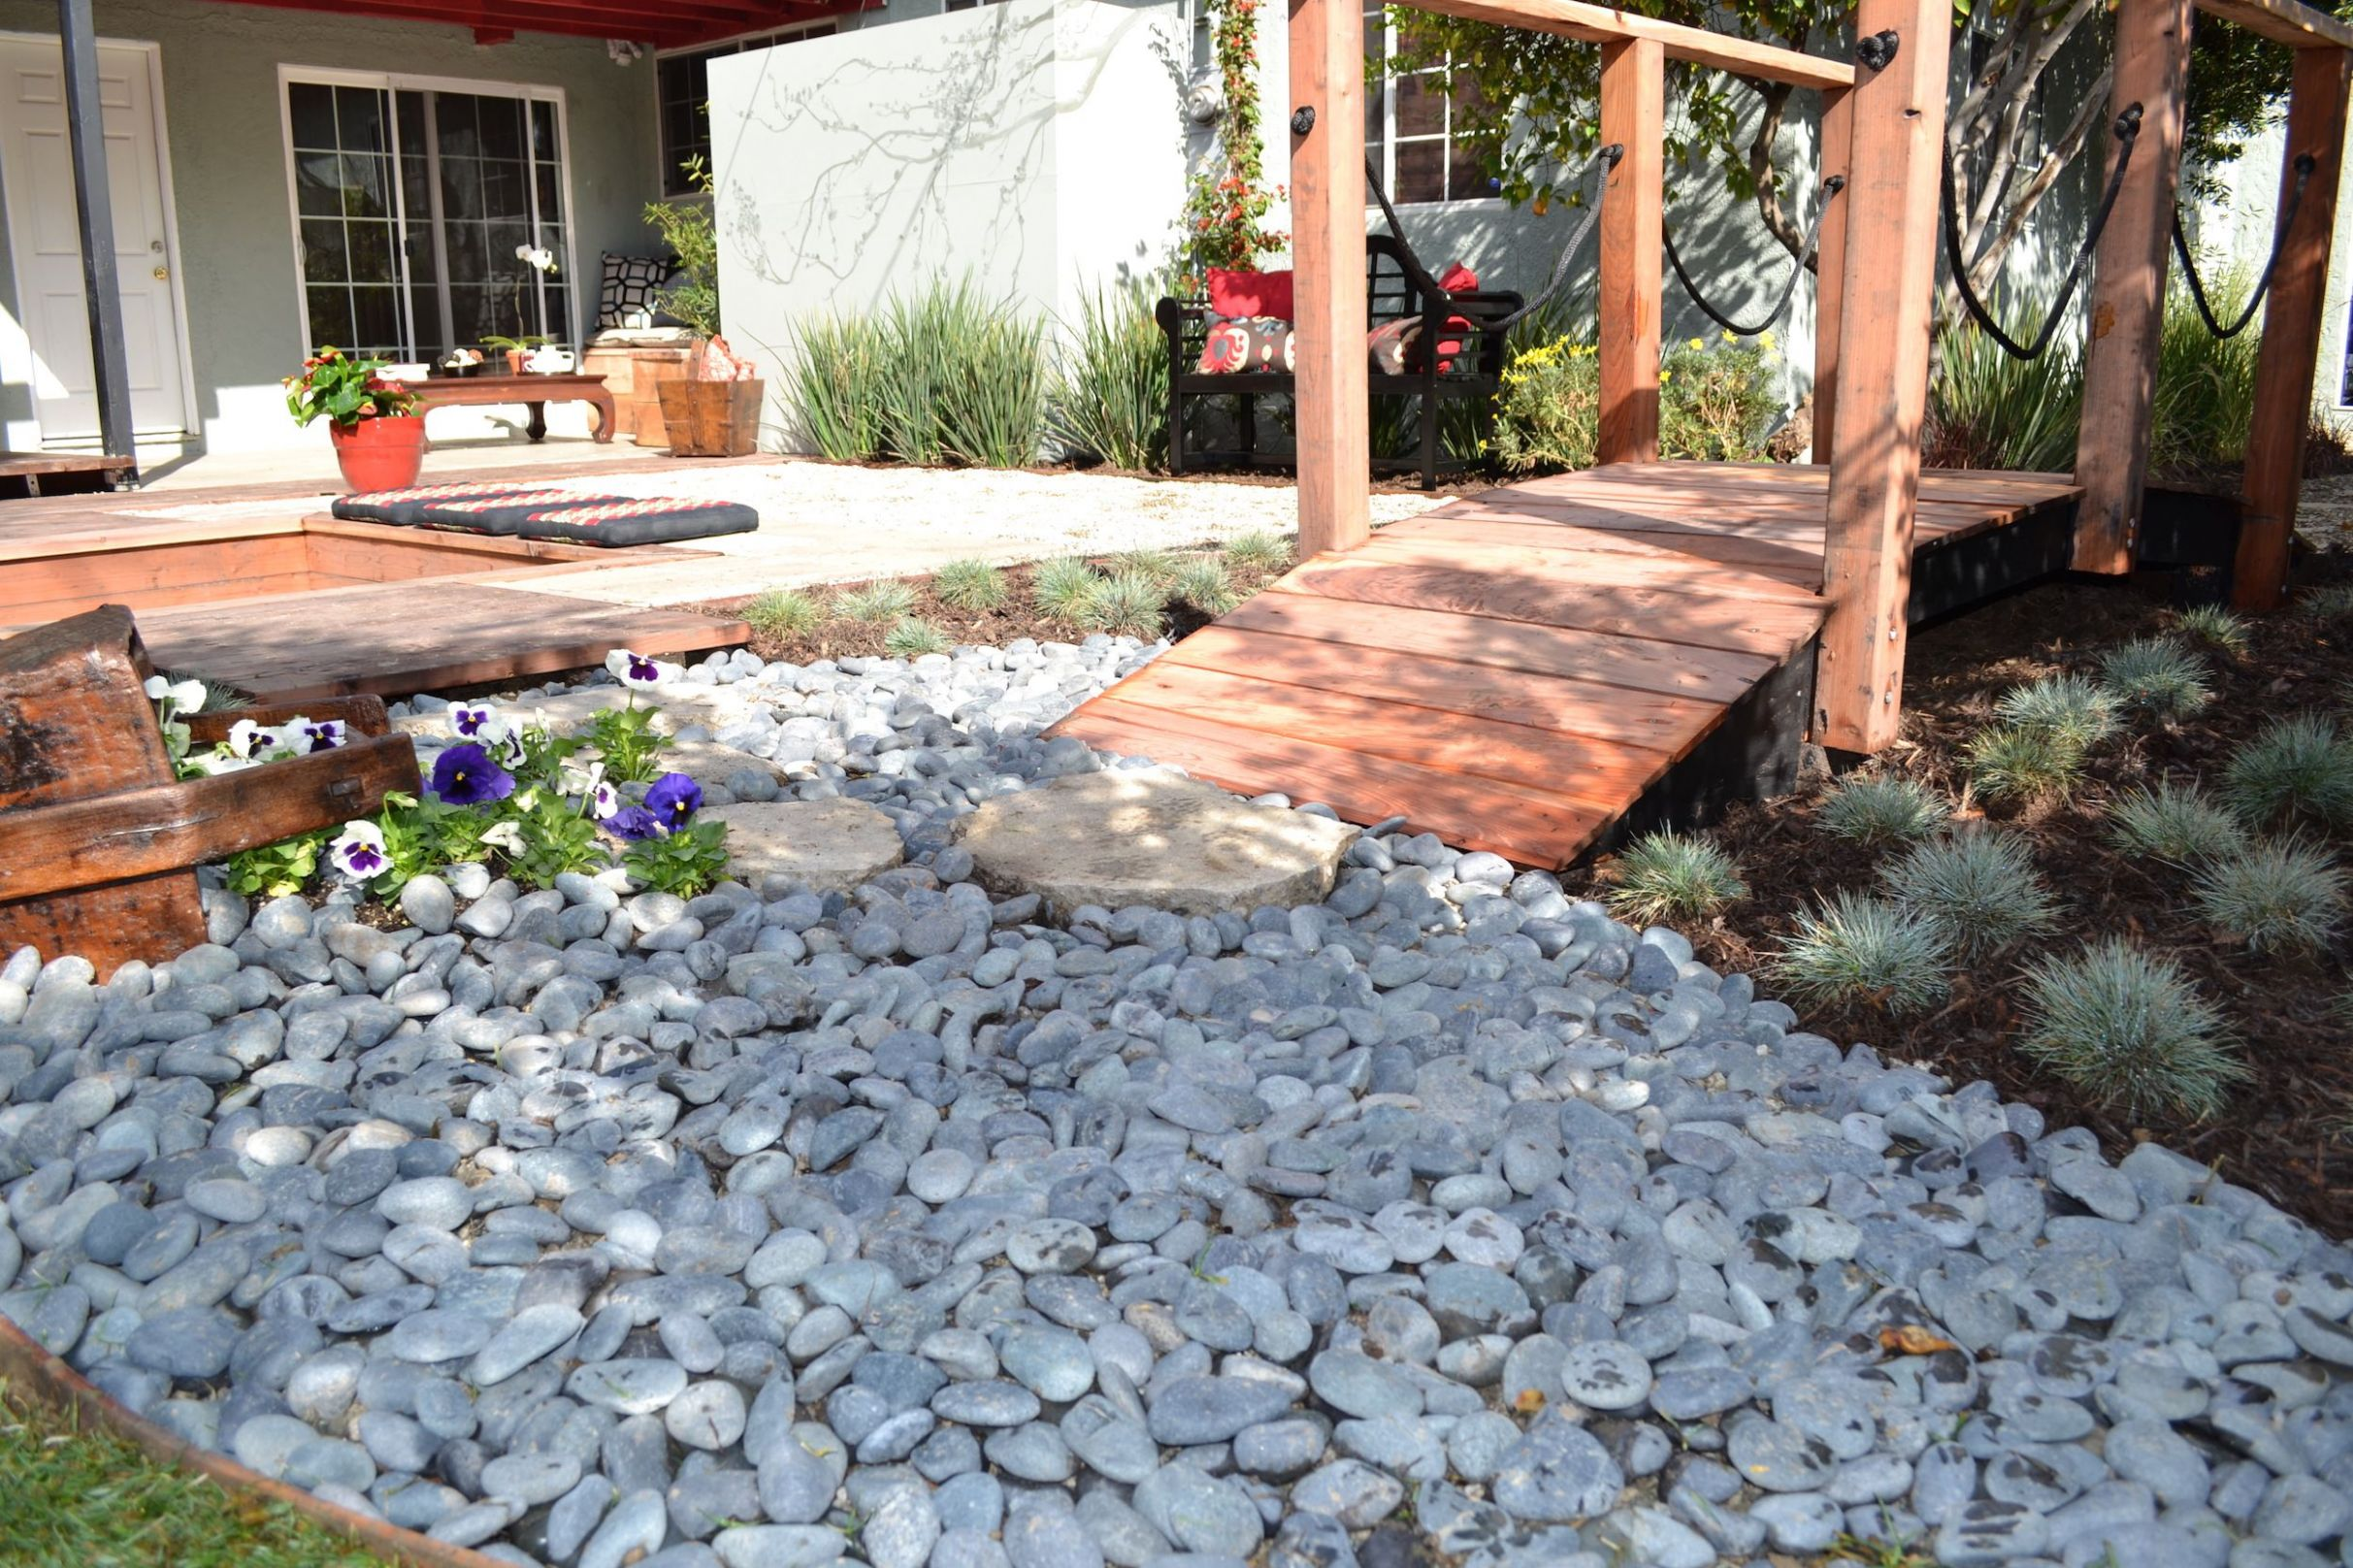 12 Landscaping Ideas For A Low-Maintenance Yard